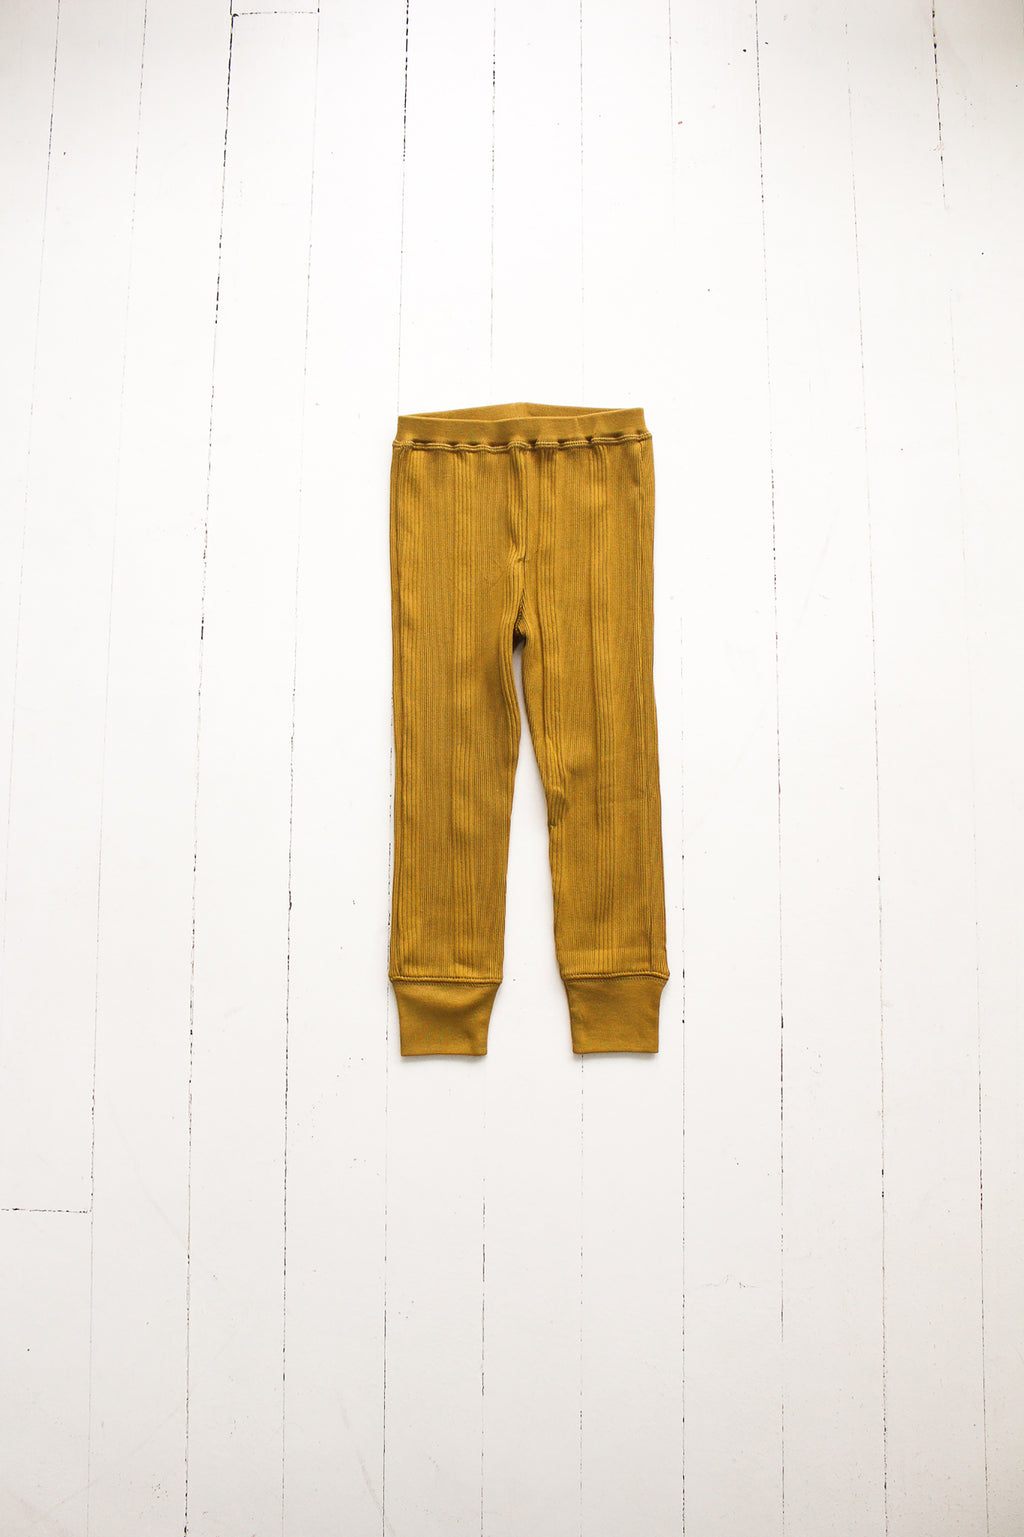 Fin and Vince - Drop Needle Pant (Mustard)